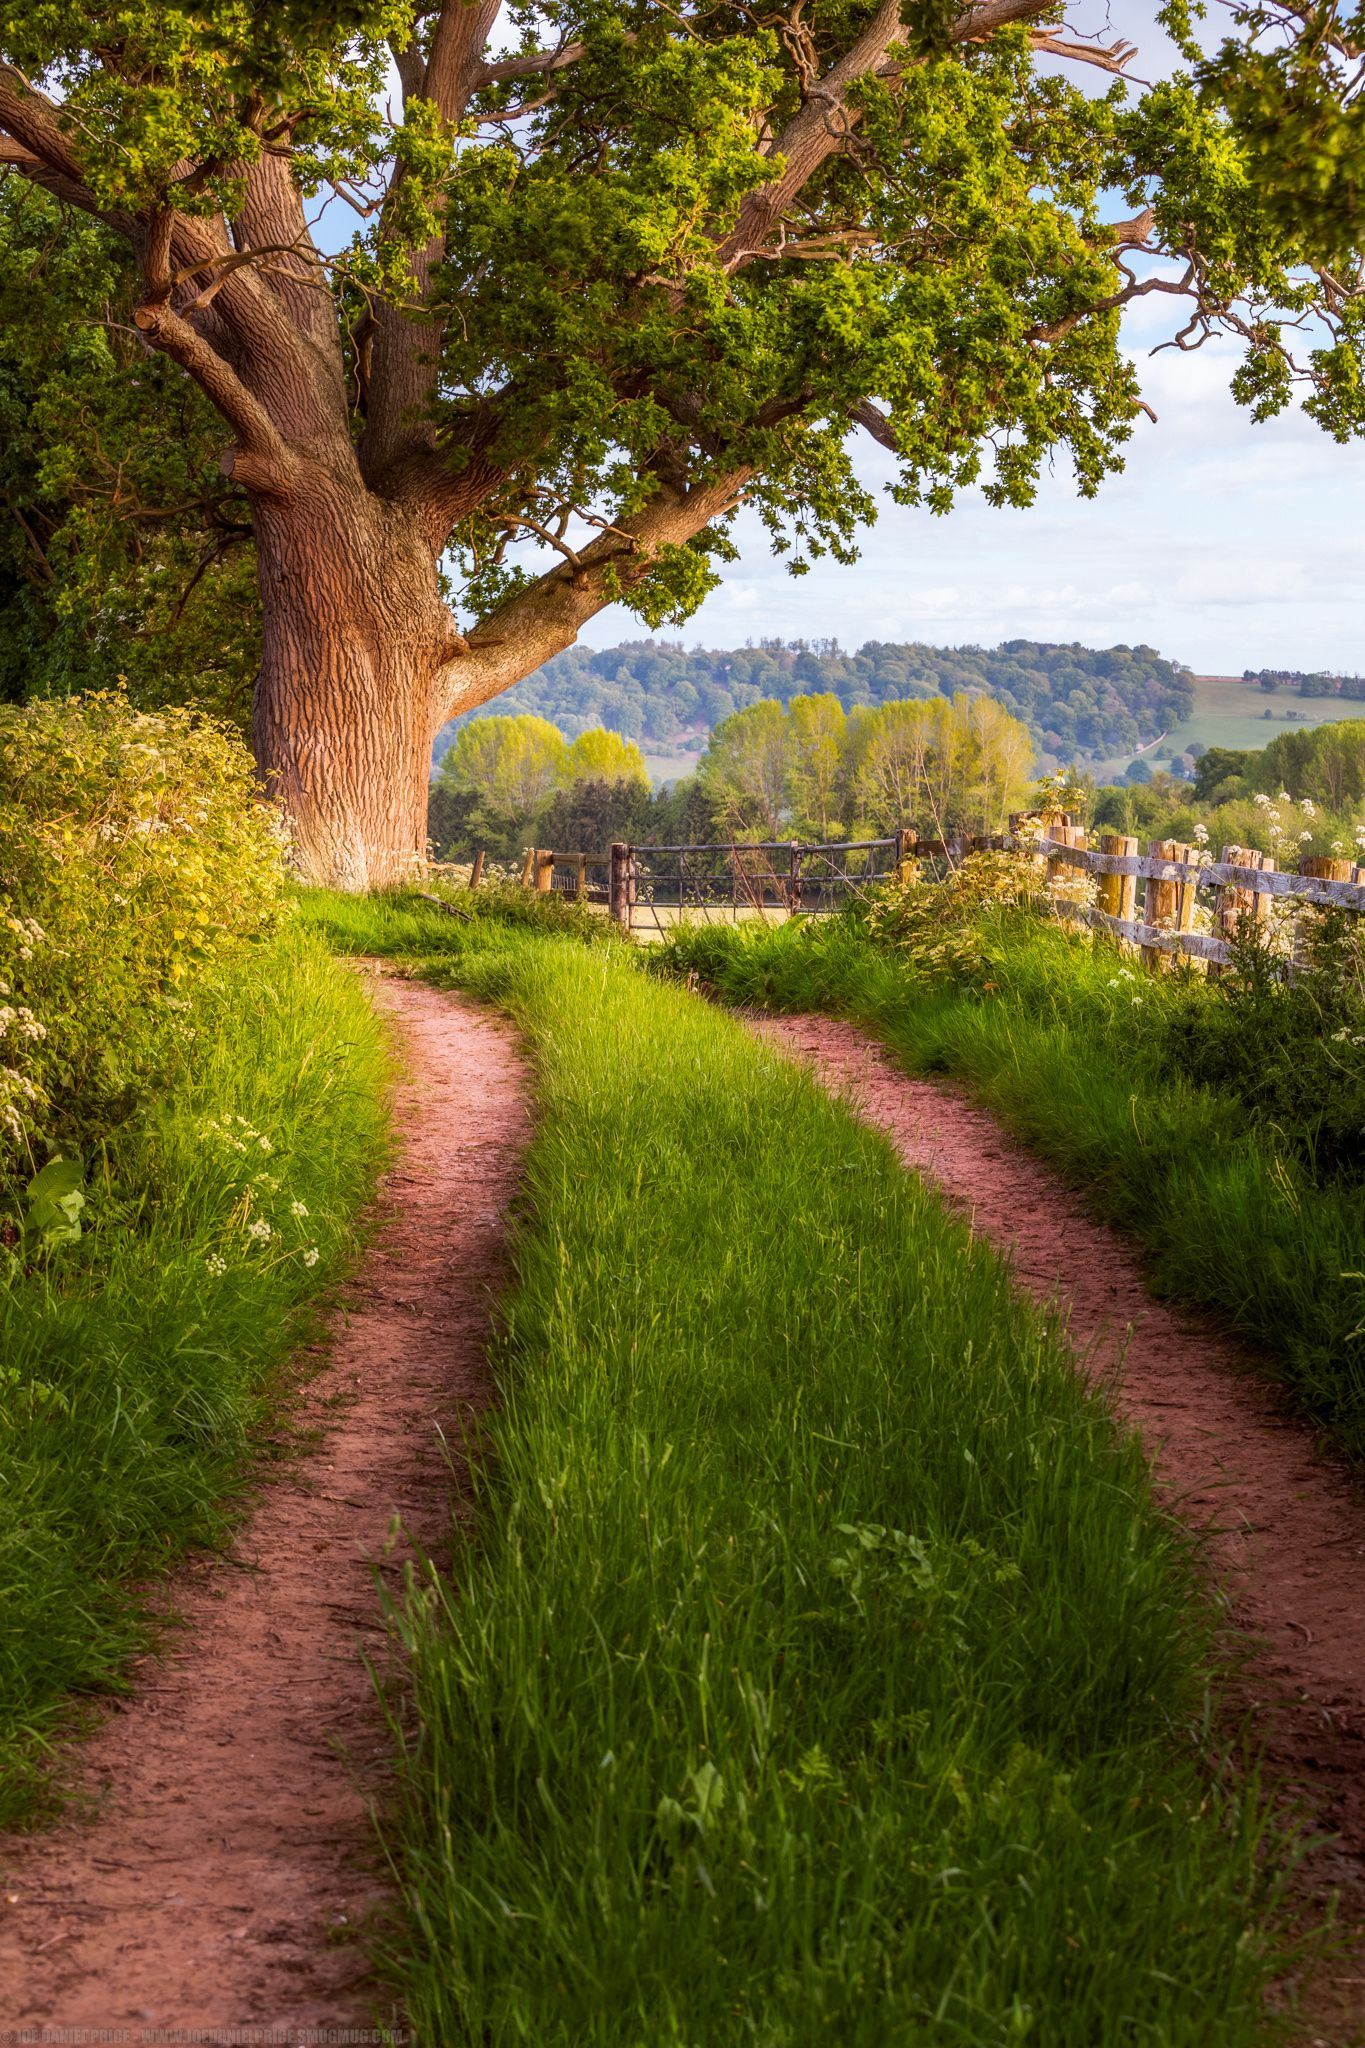 Country Lane, Leton, Hereford, Herefordshire, England by Joe Daniel Price on 500px